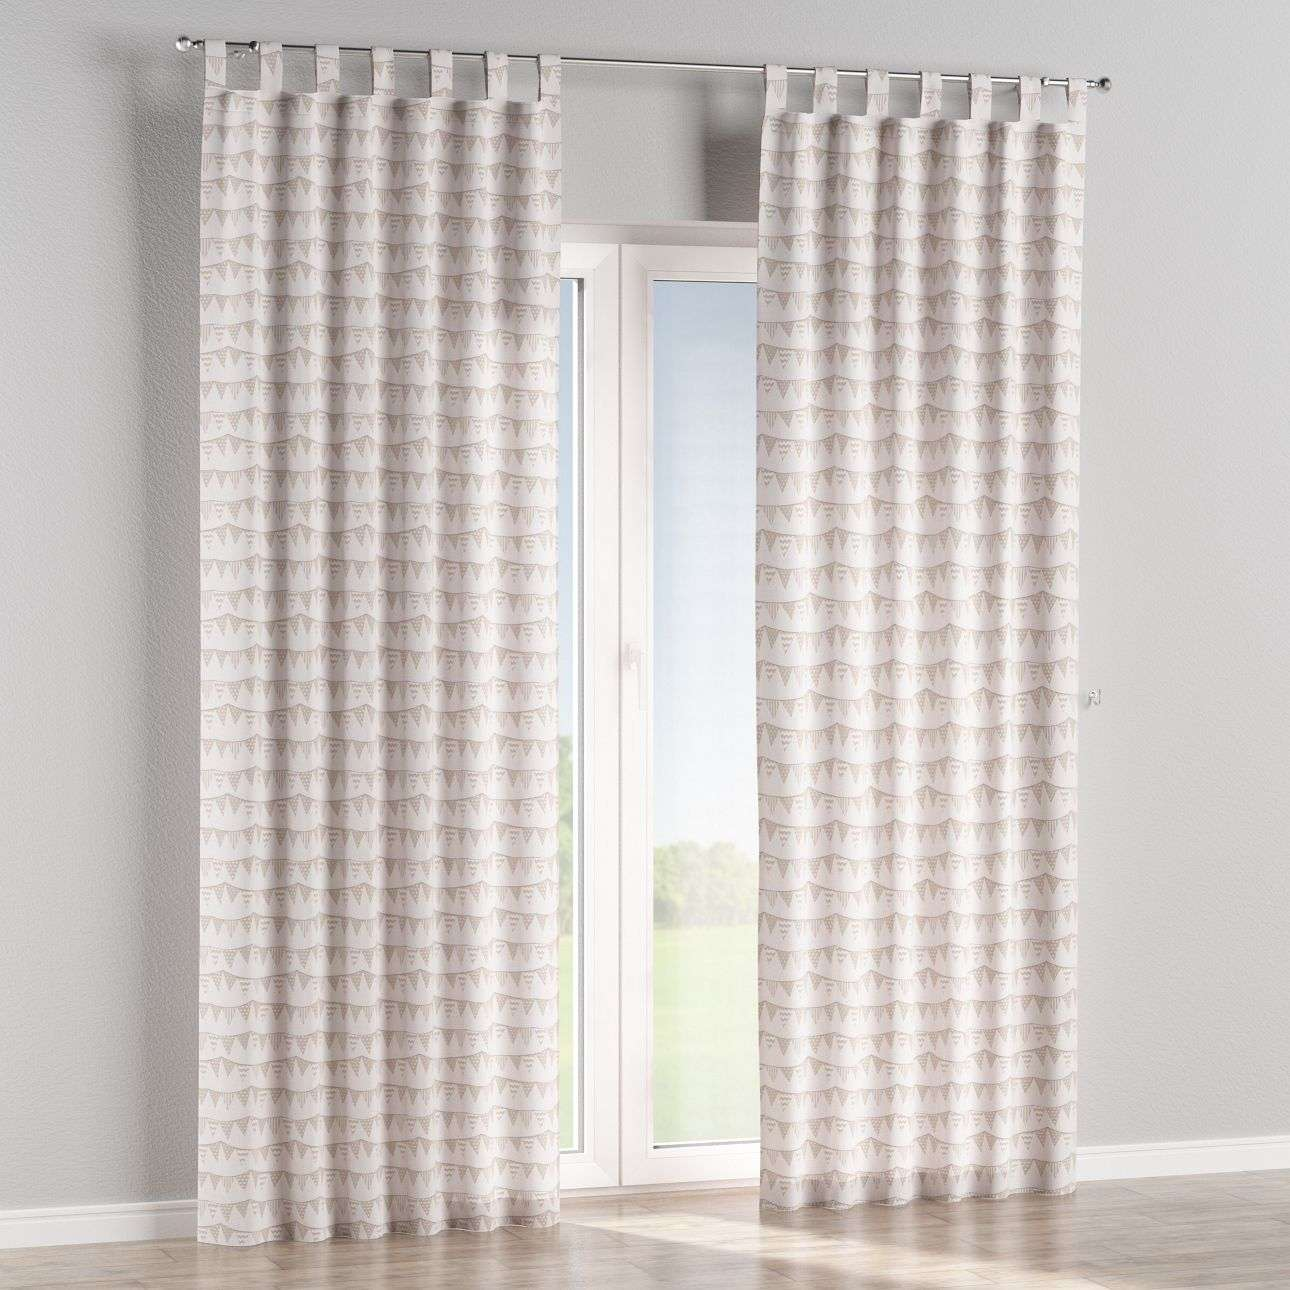 Tab top curtains 130 x 260 cm (51 x 102 inch) in collection Marina, fabric: 140-65